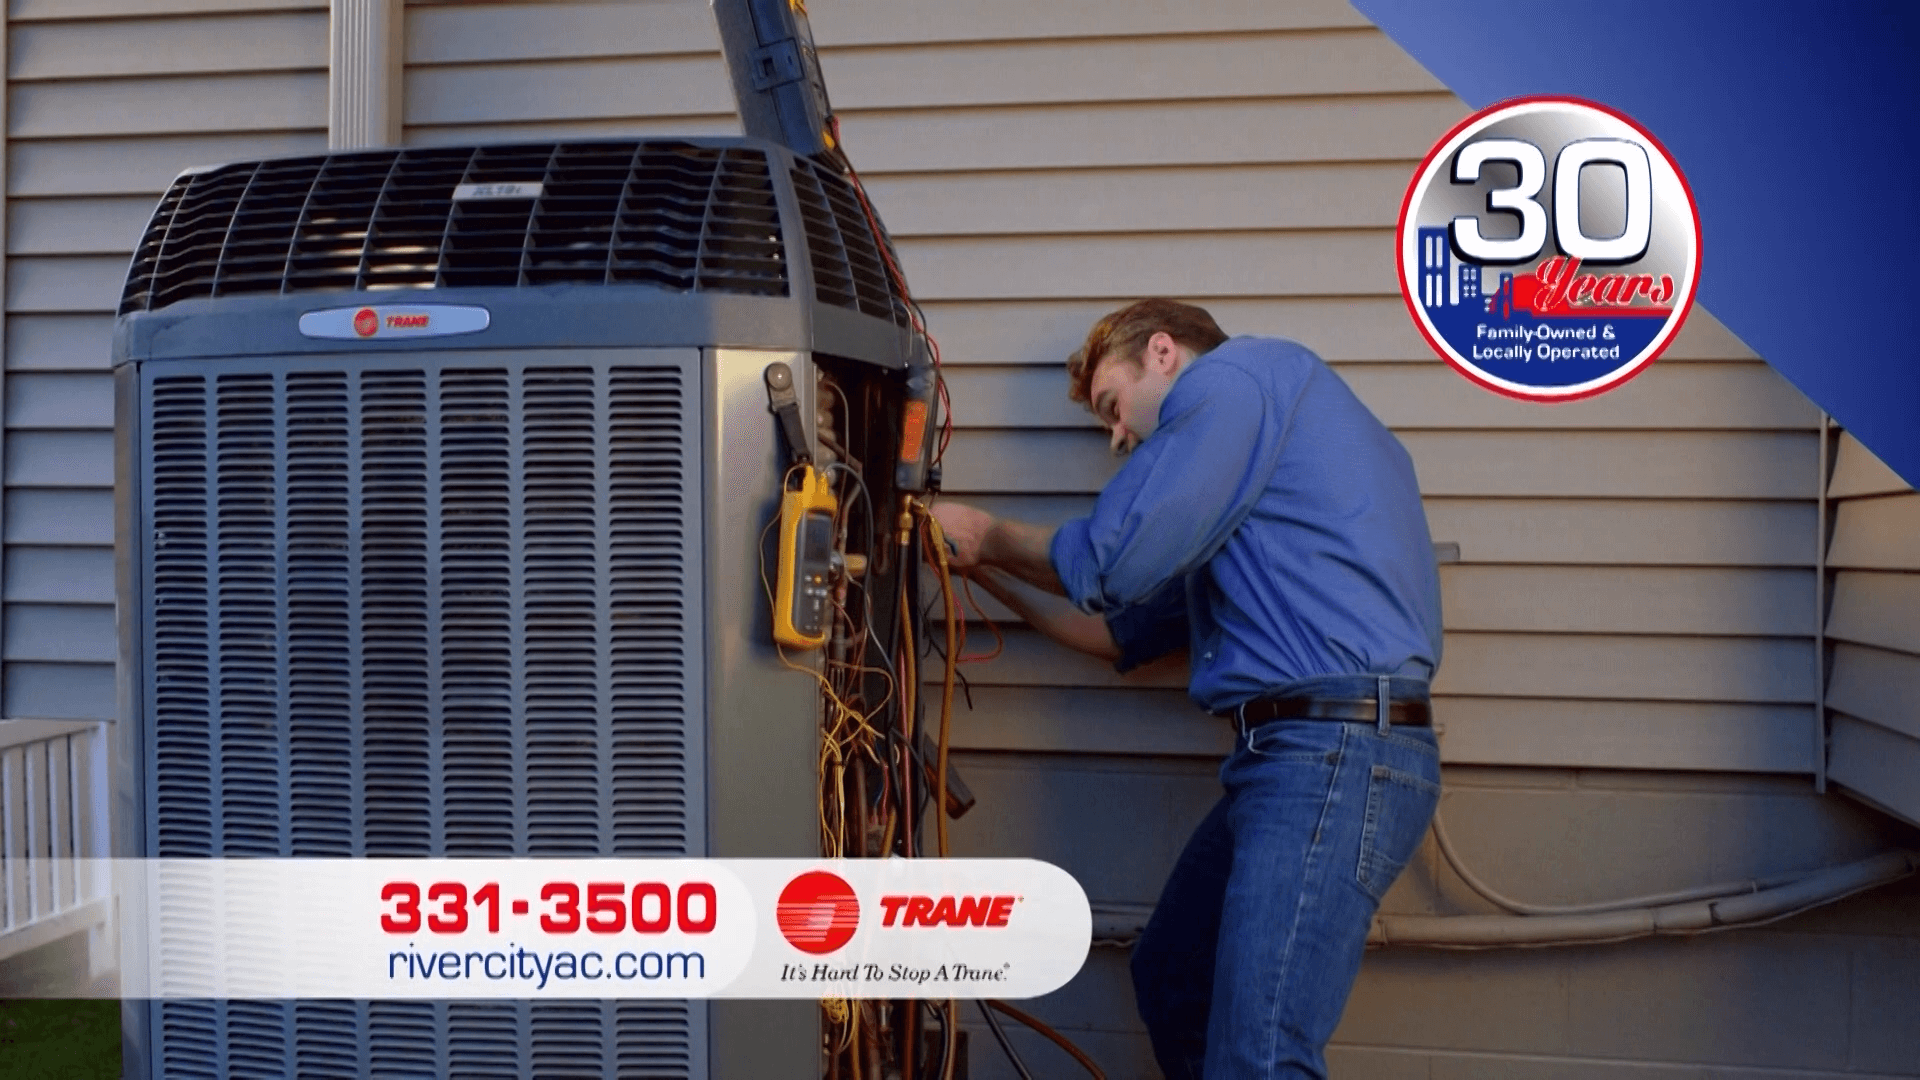 Technician providing services for heating and cooling in Omaha, NE